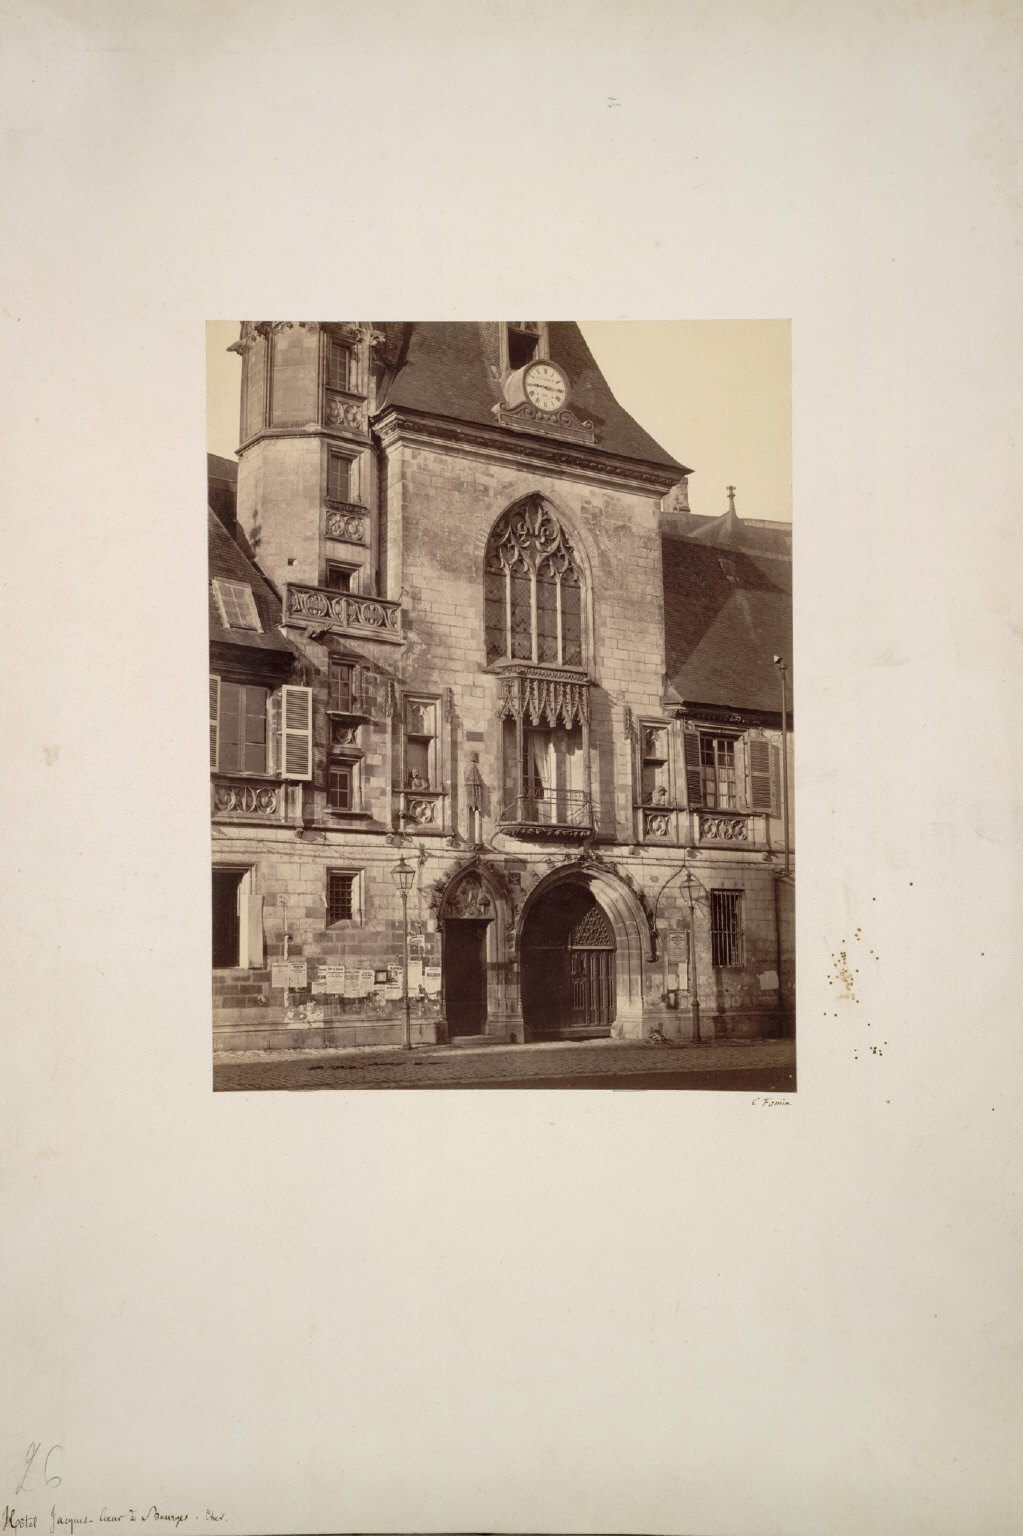 Hotel Jacques Coeur at Bourges